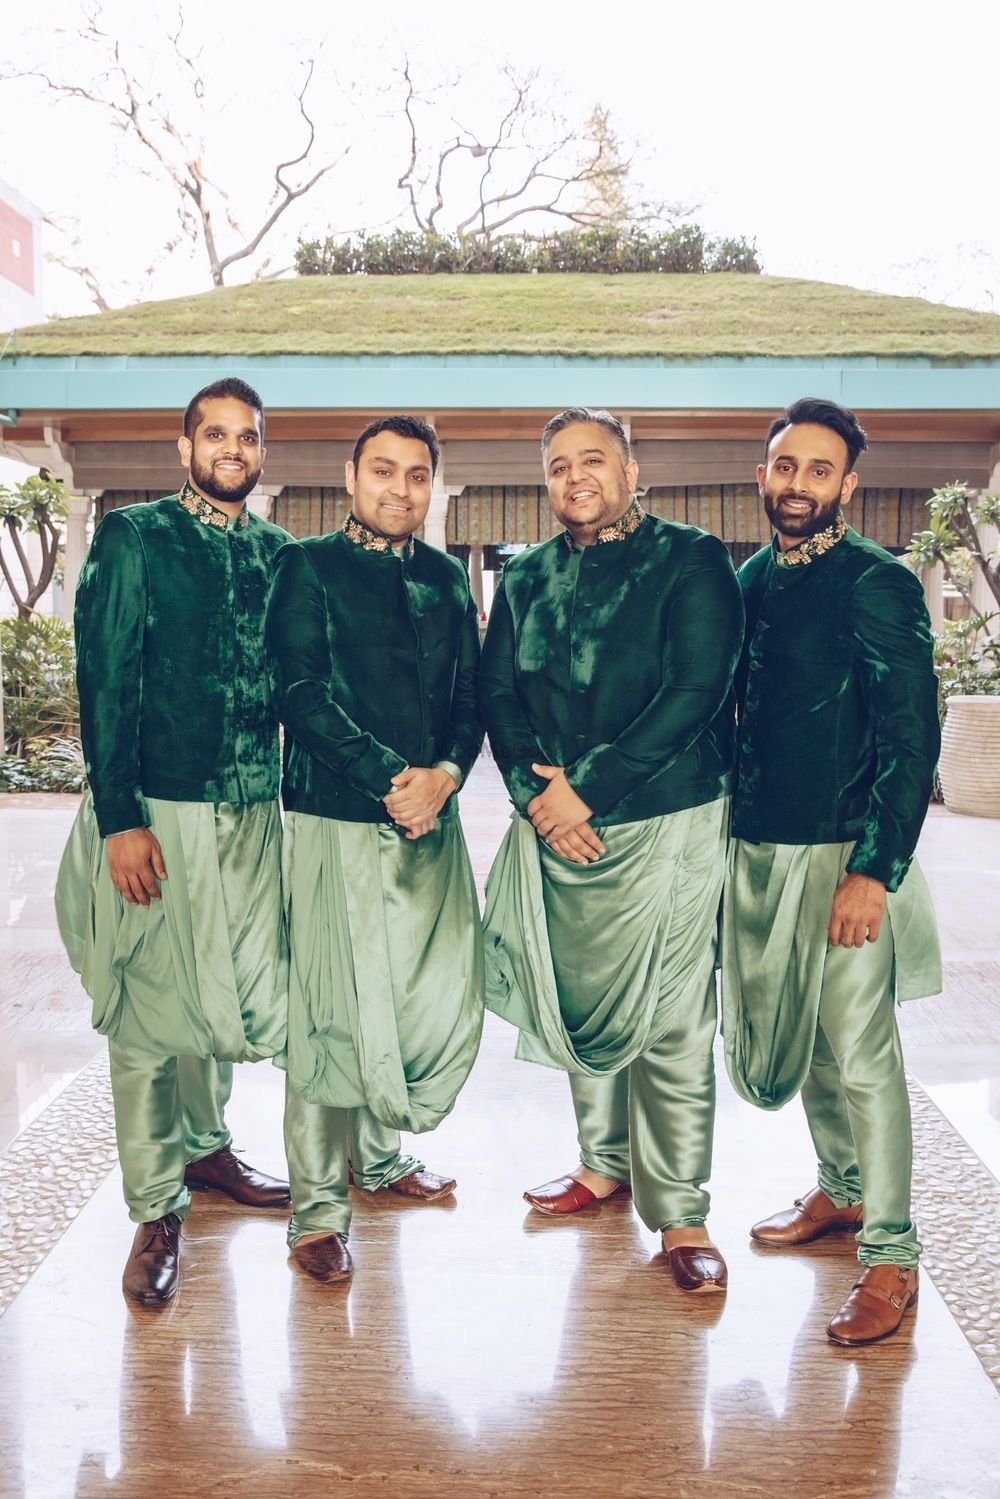 Photo of Groomsmen in draped kurta and green jackets